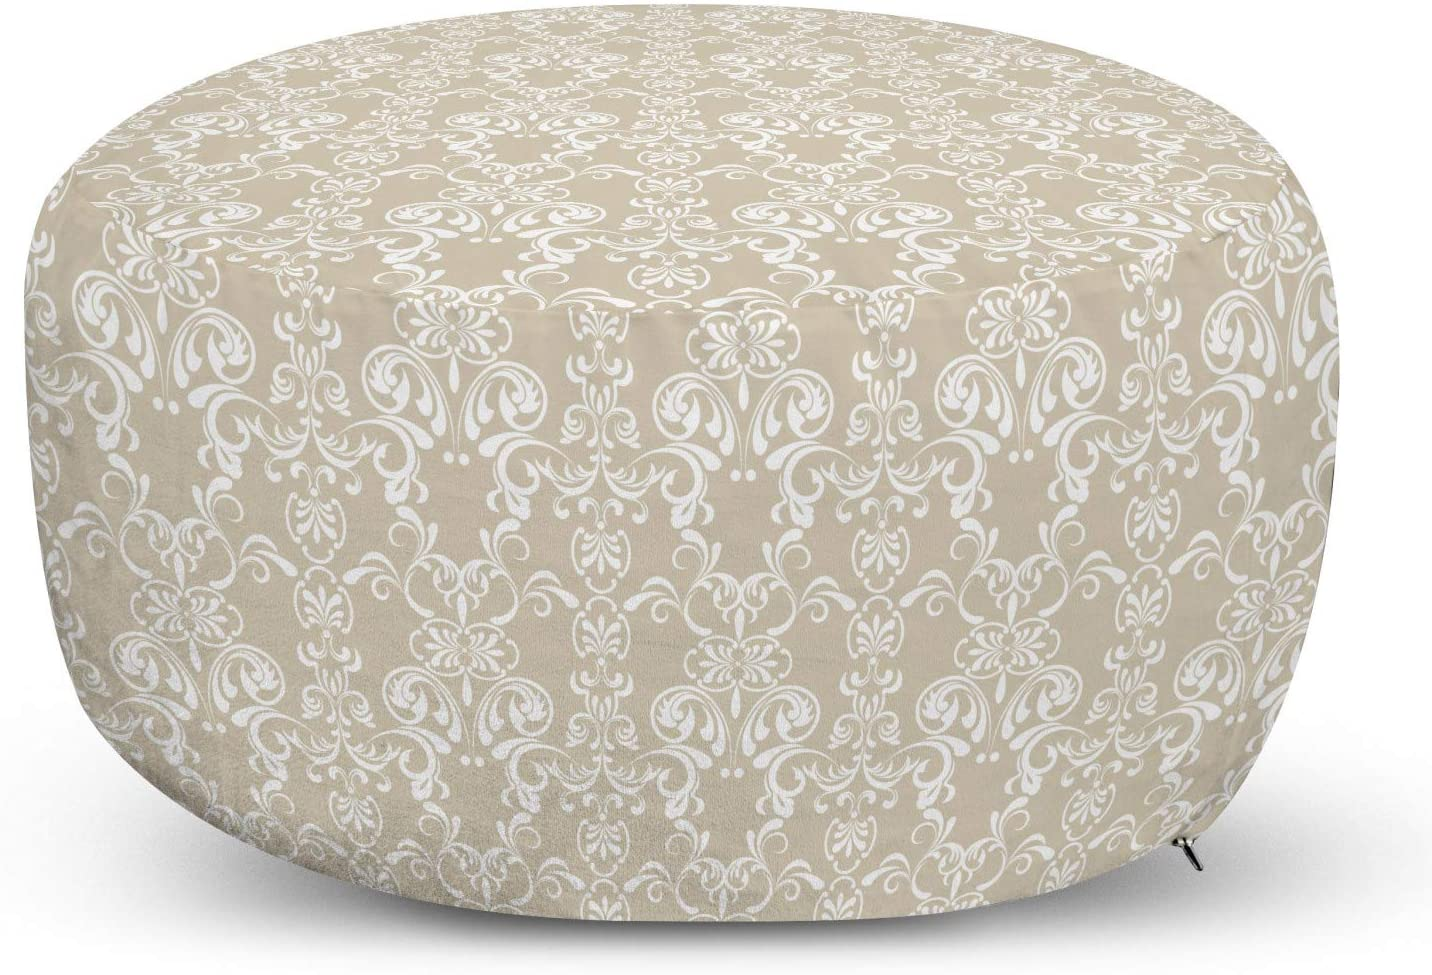 Ambesonne Beige Ottoman Pouf, Lace Inspired Floral Arrangement Traditional Foliage Pattern Ornate Romantic Design, Decorative Soft Foot Rest with Removable Cover Living Room and Bedroom, White Beige